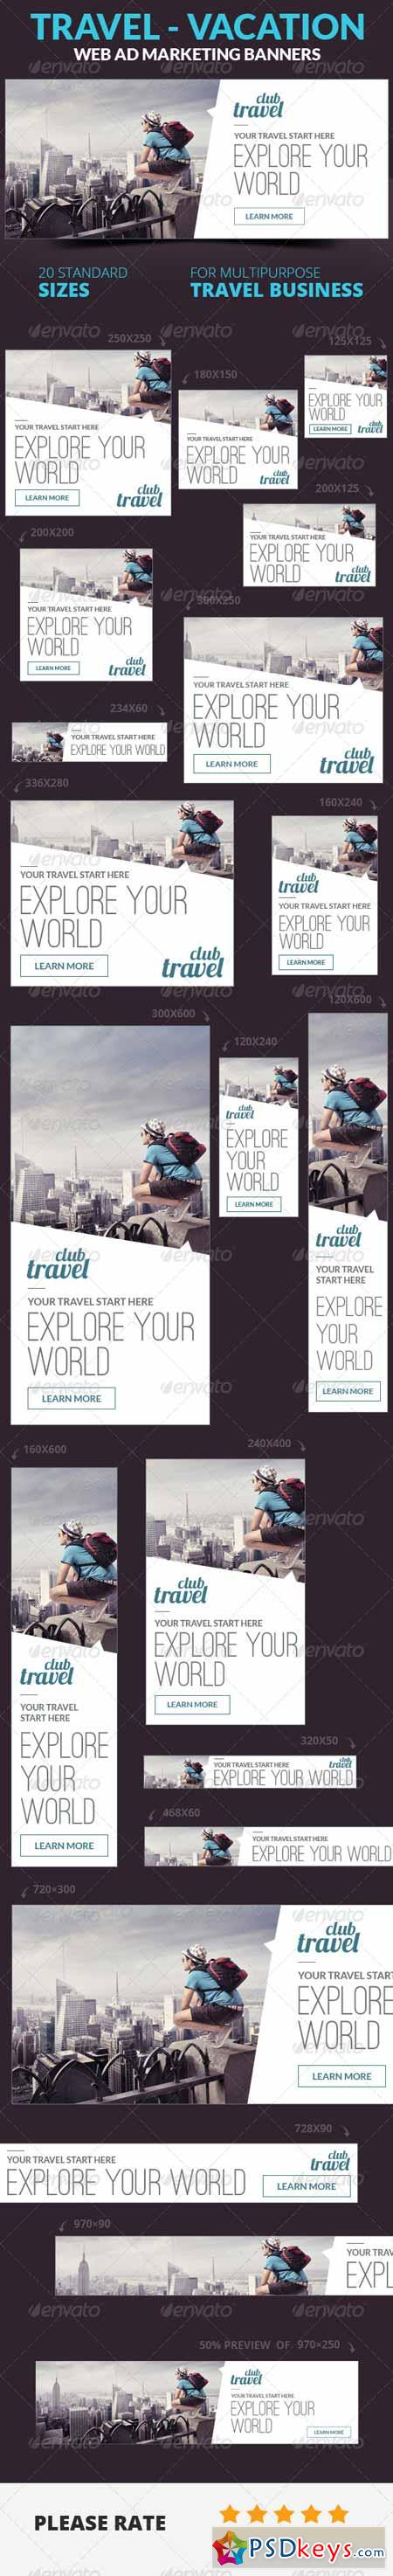 Travel - Vacation Web Ad Marketing Banners 6895832